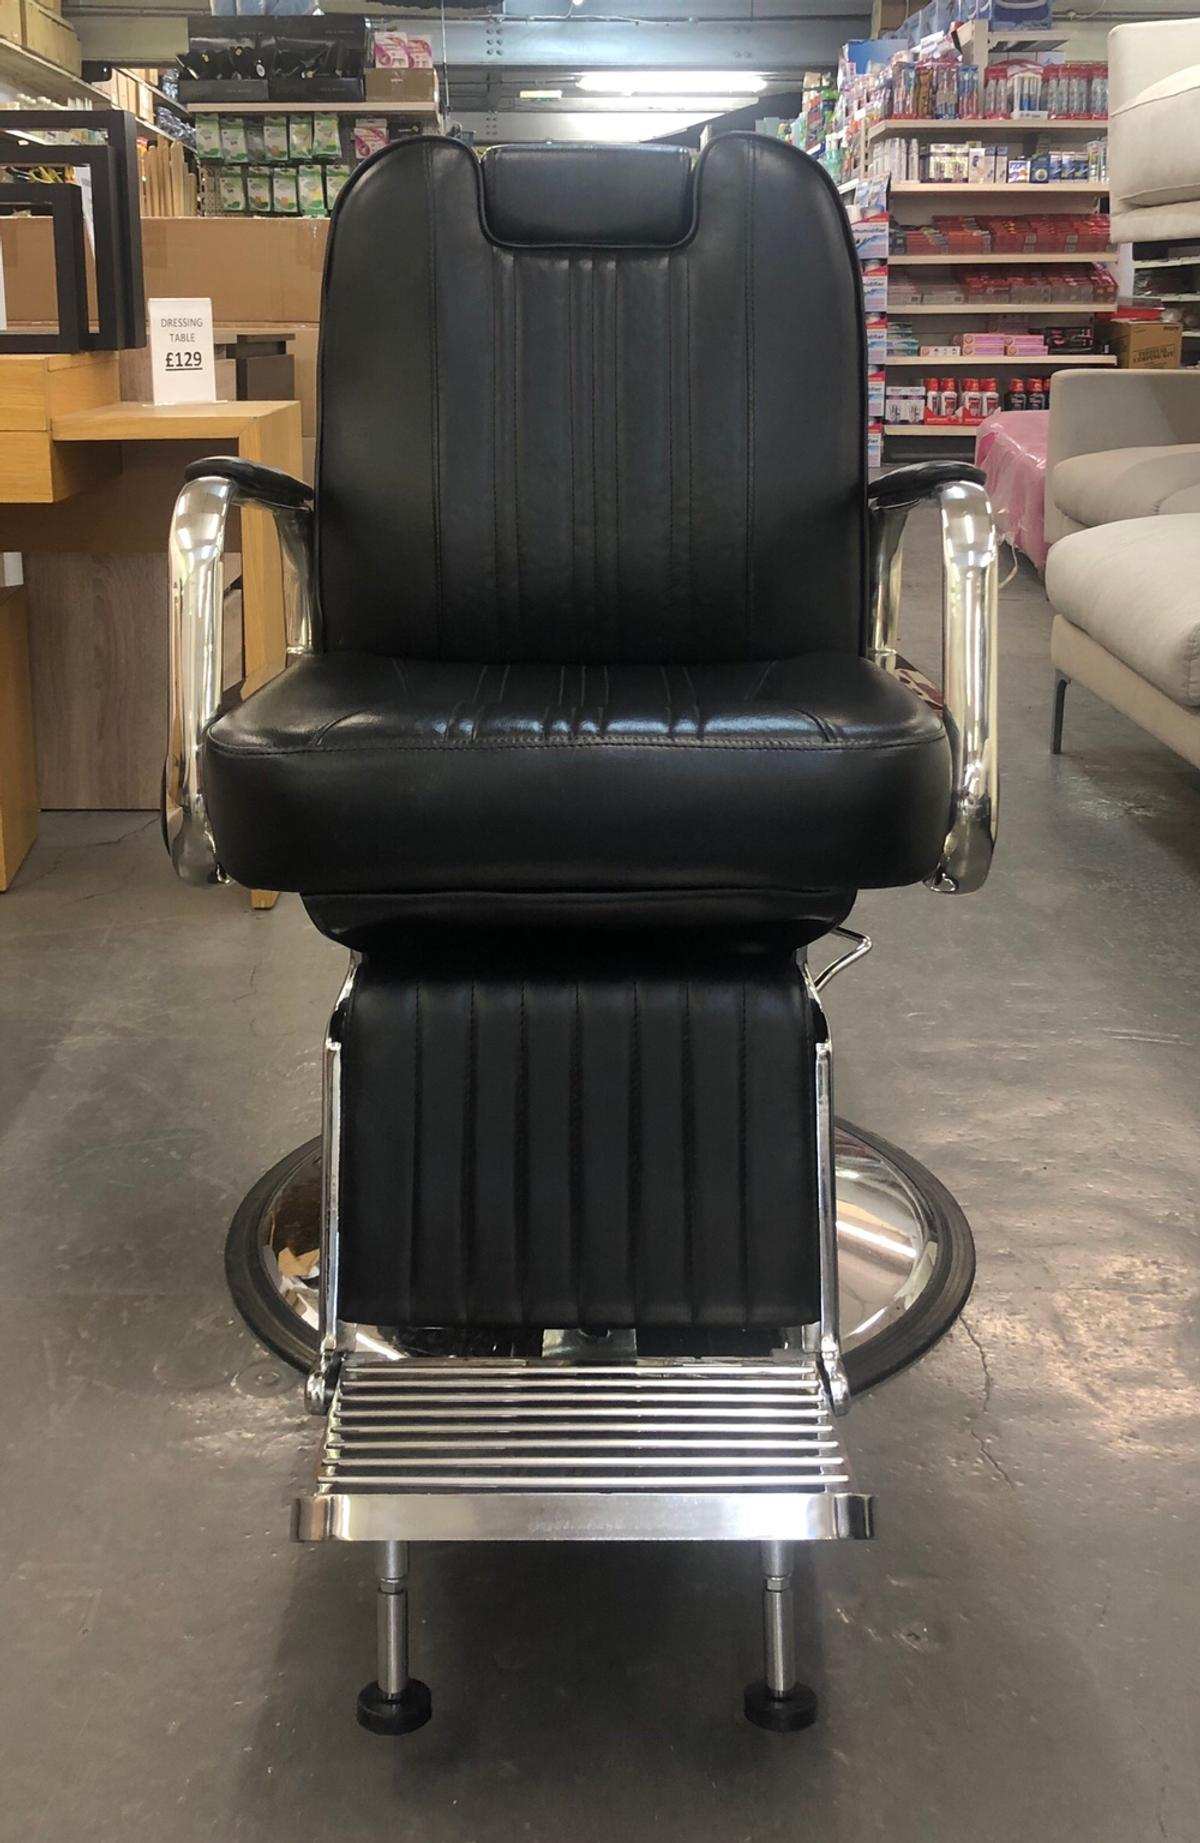 Enjoyable Black Leather Barber Chair Gmtry Best Dining Table And Chair Ideas Images Gmtryco